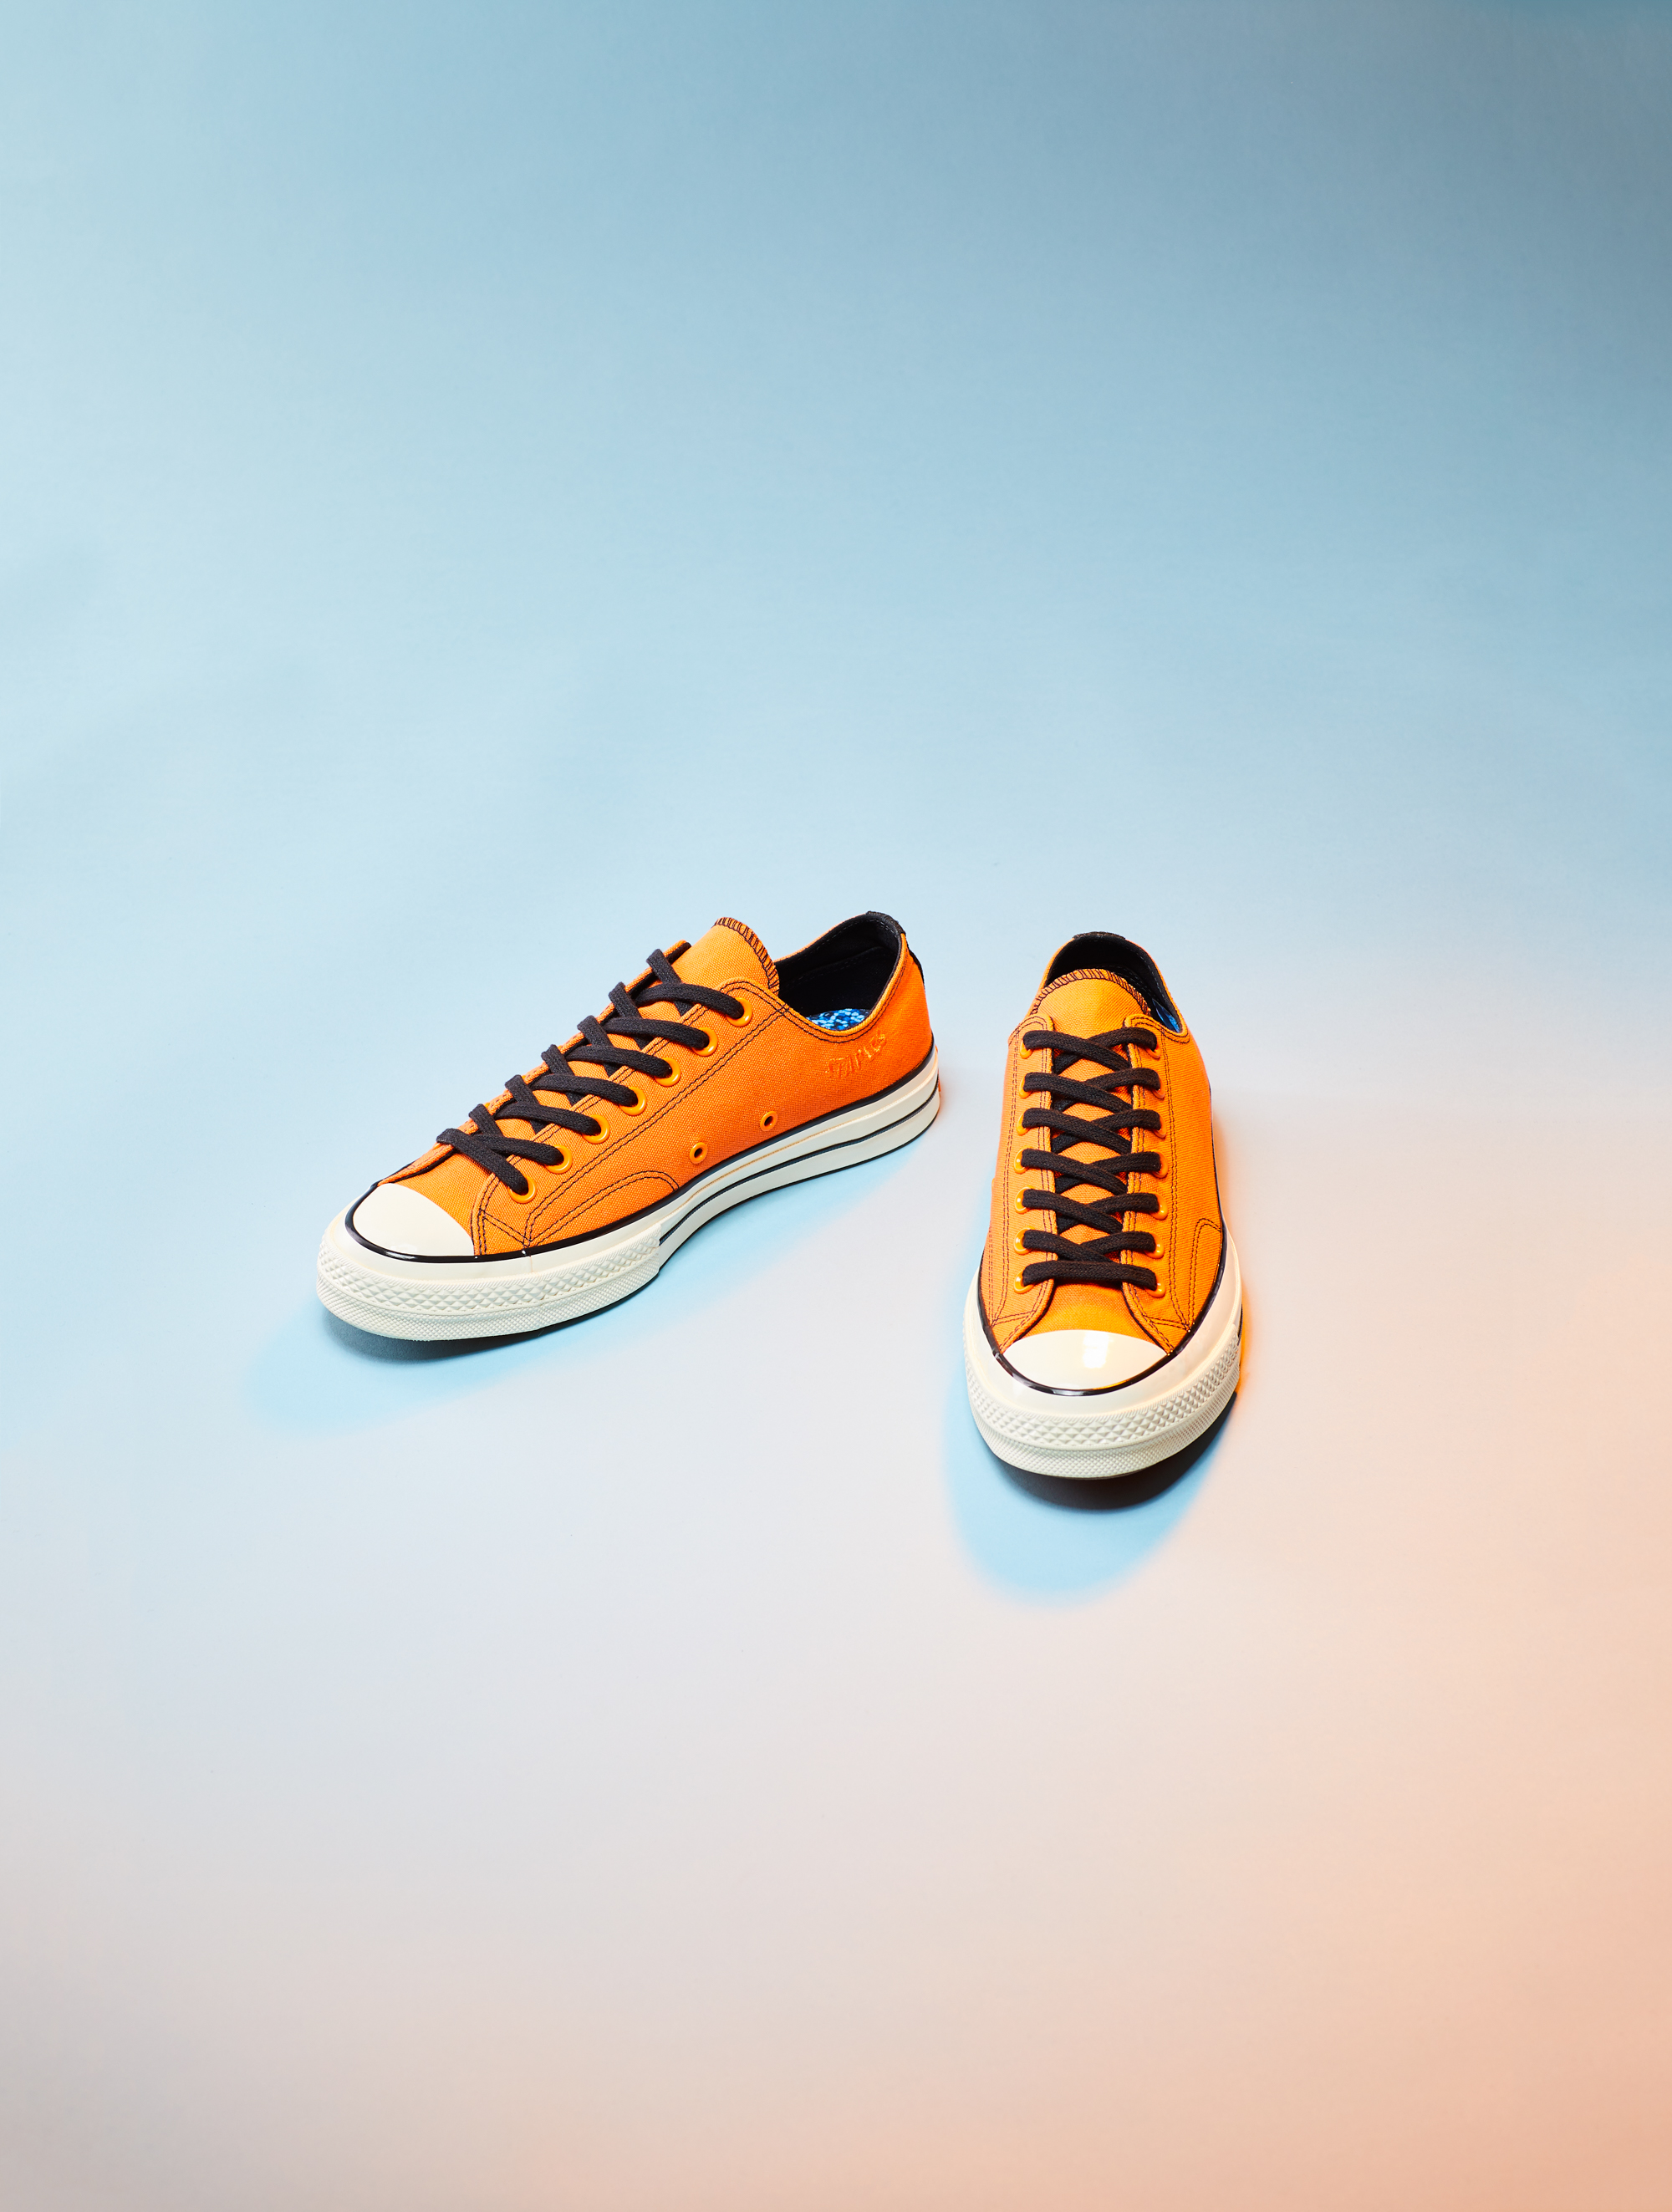 Vince Staples Reveals 'Big Fish Theory' Converse Collab Sneakers | Pursuit  Of Dopeness